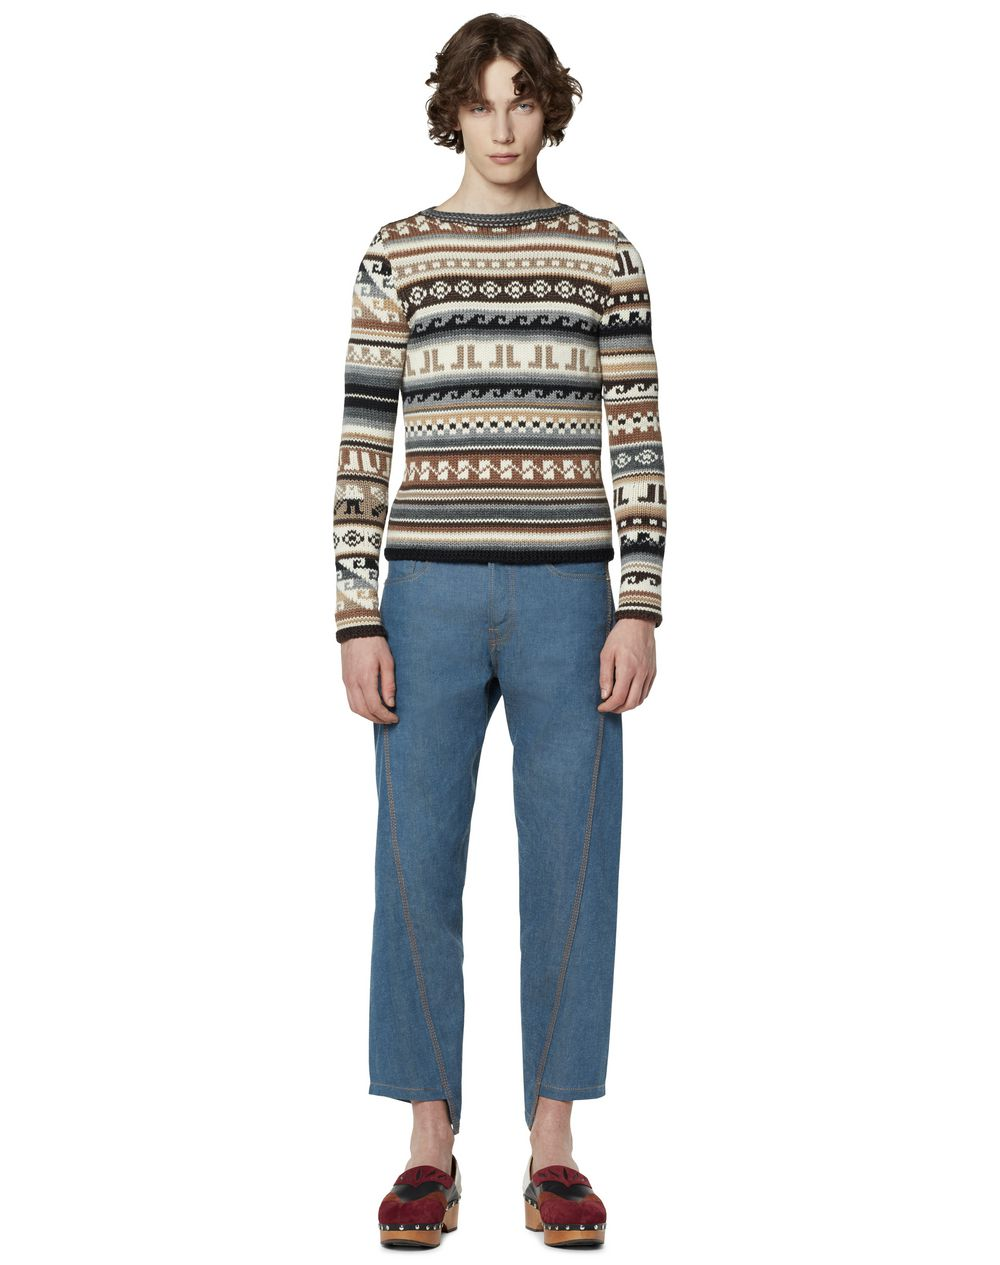 WOOL SWEATER WITH JACQUARD MOTIFS - Lanvin